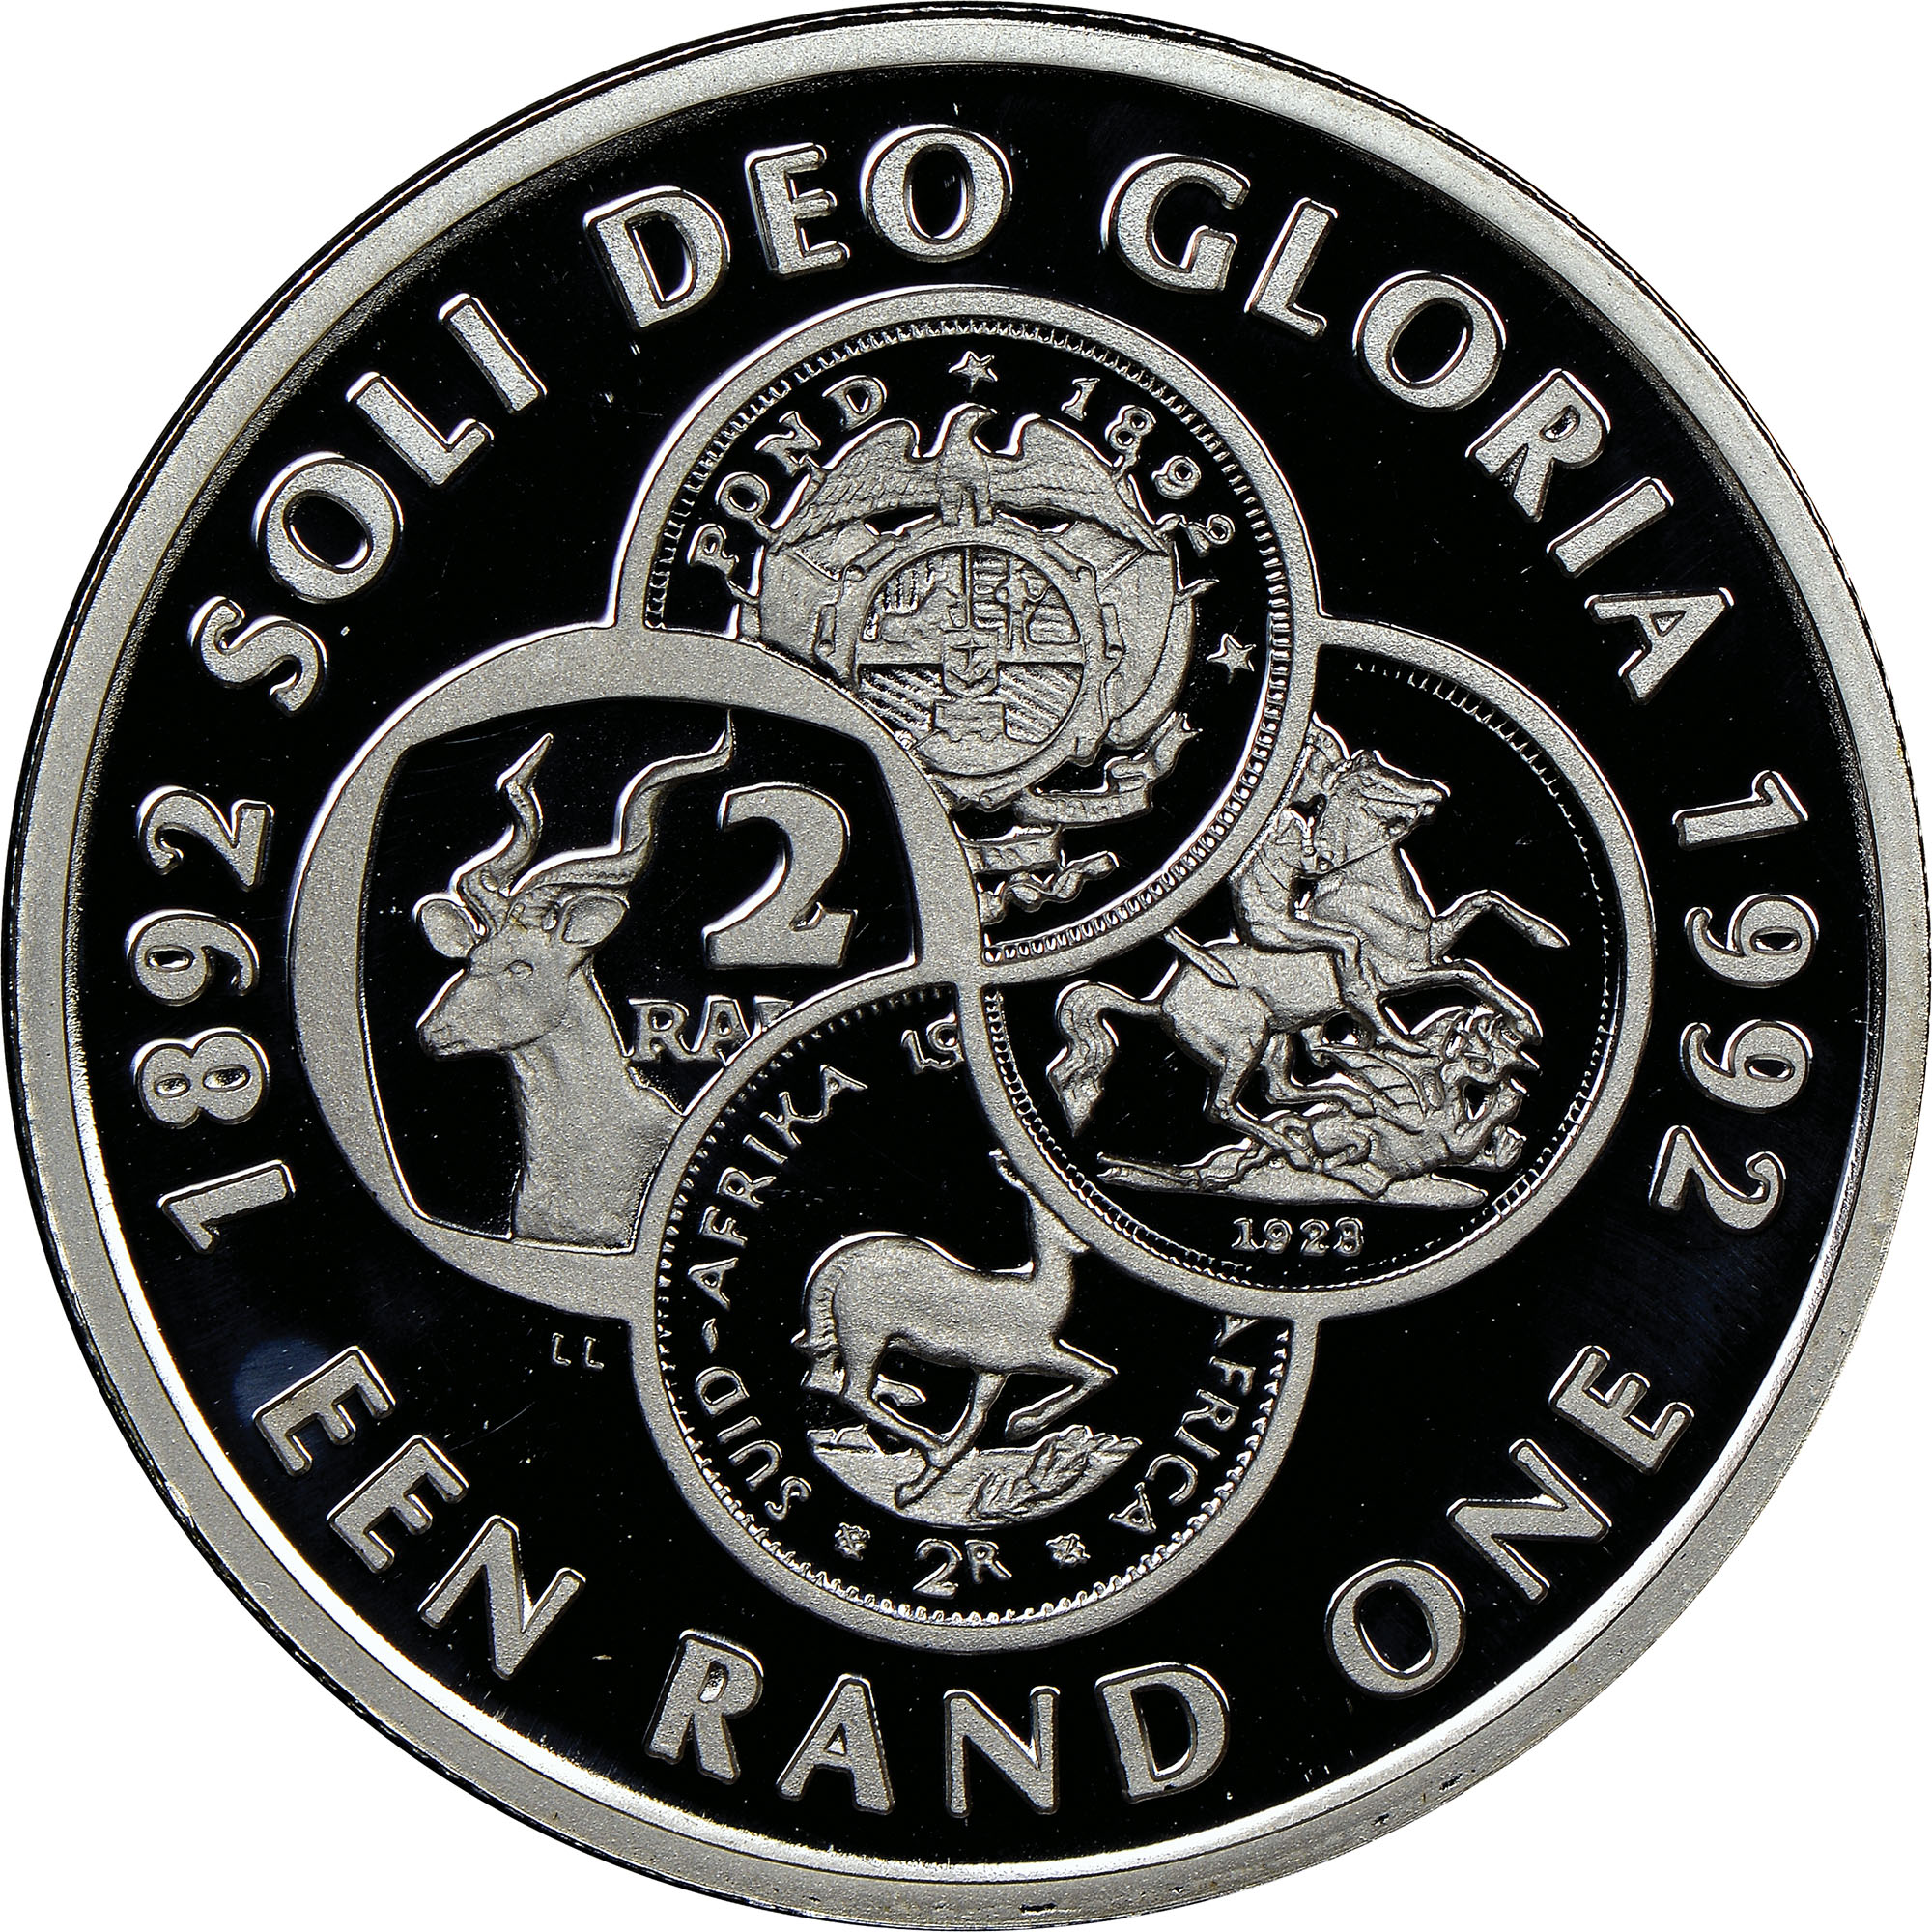 South Africa Rand reverse